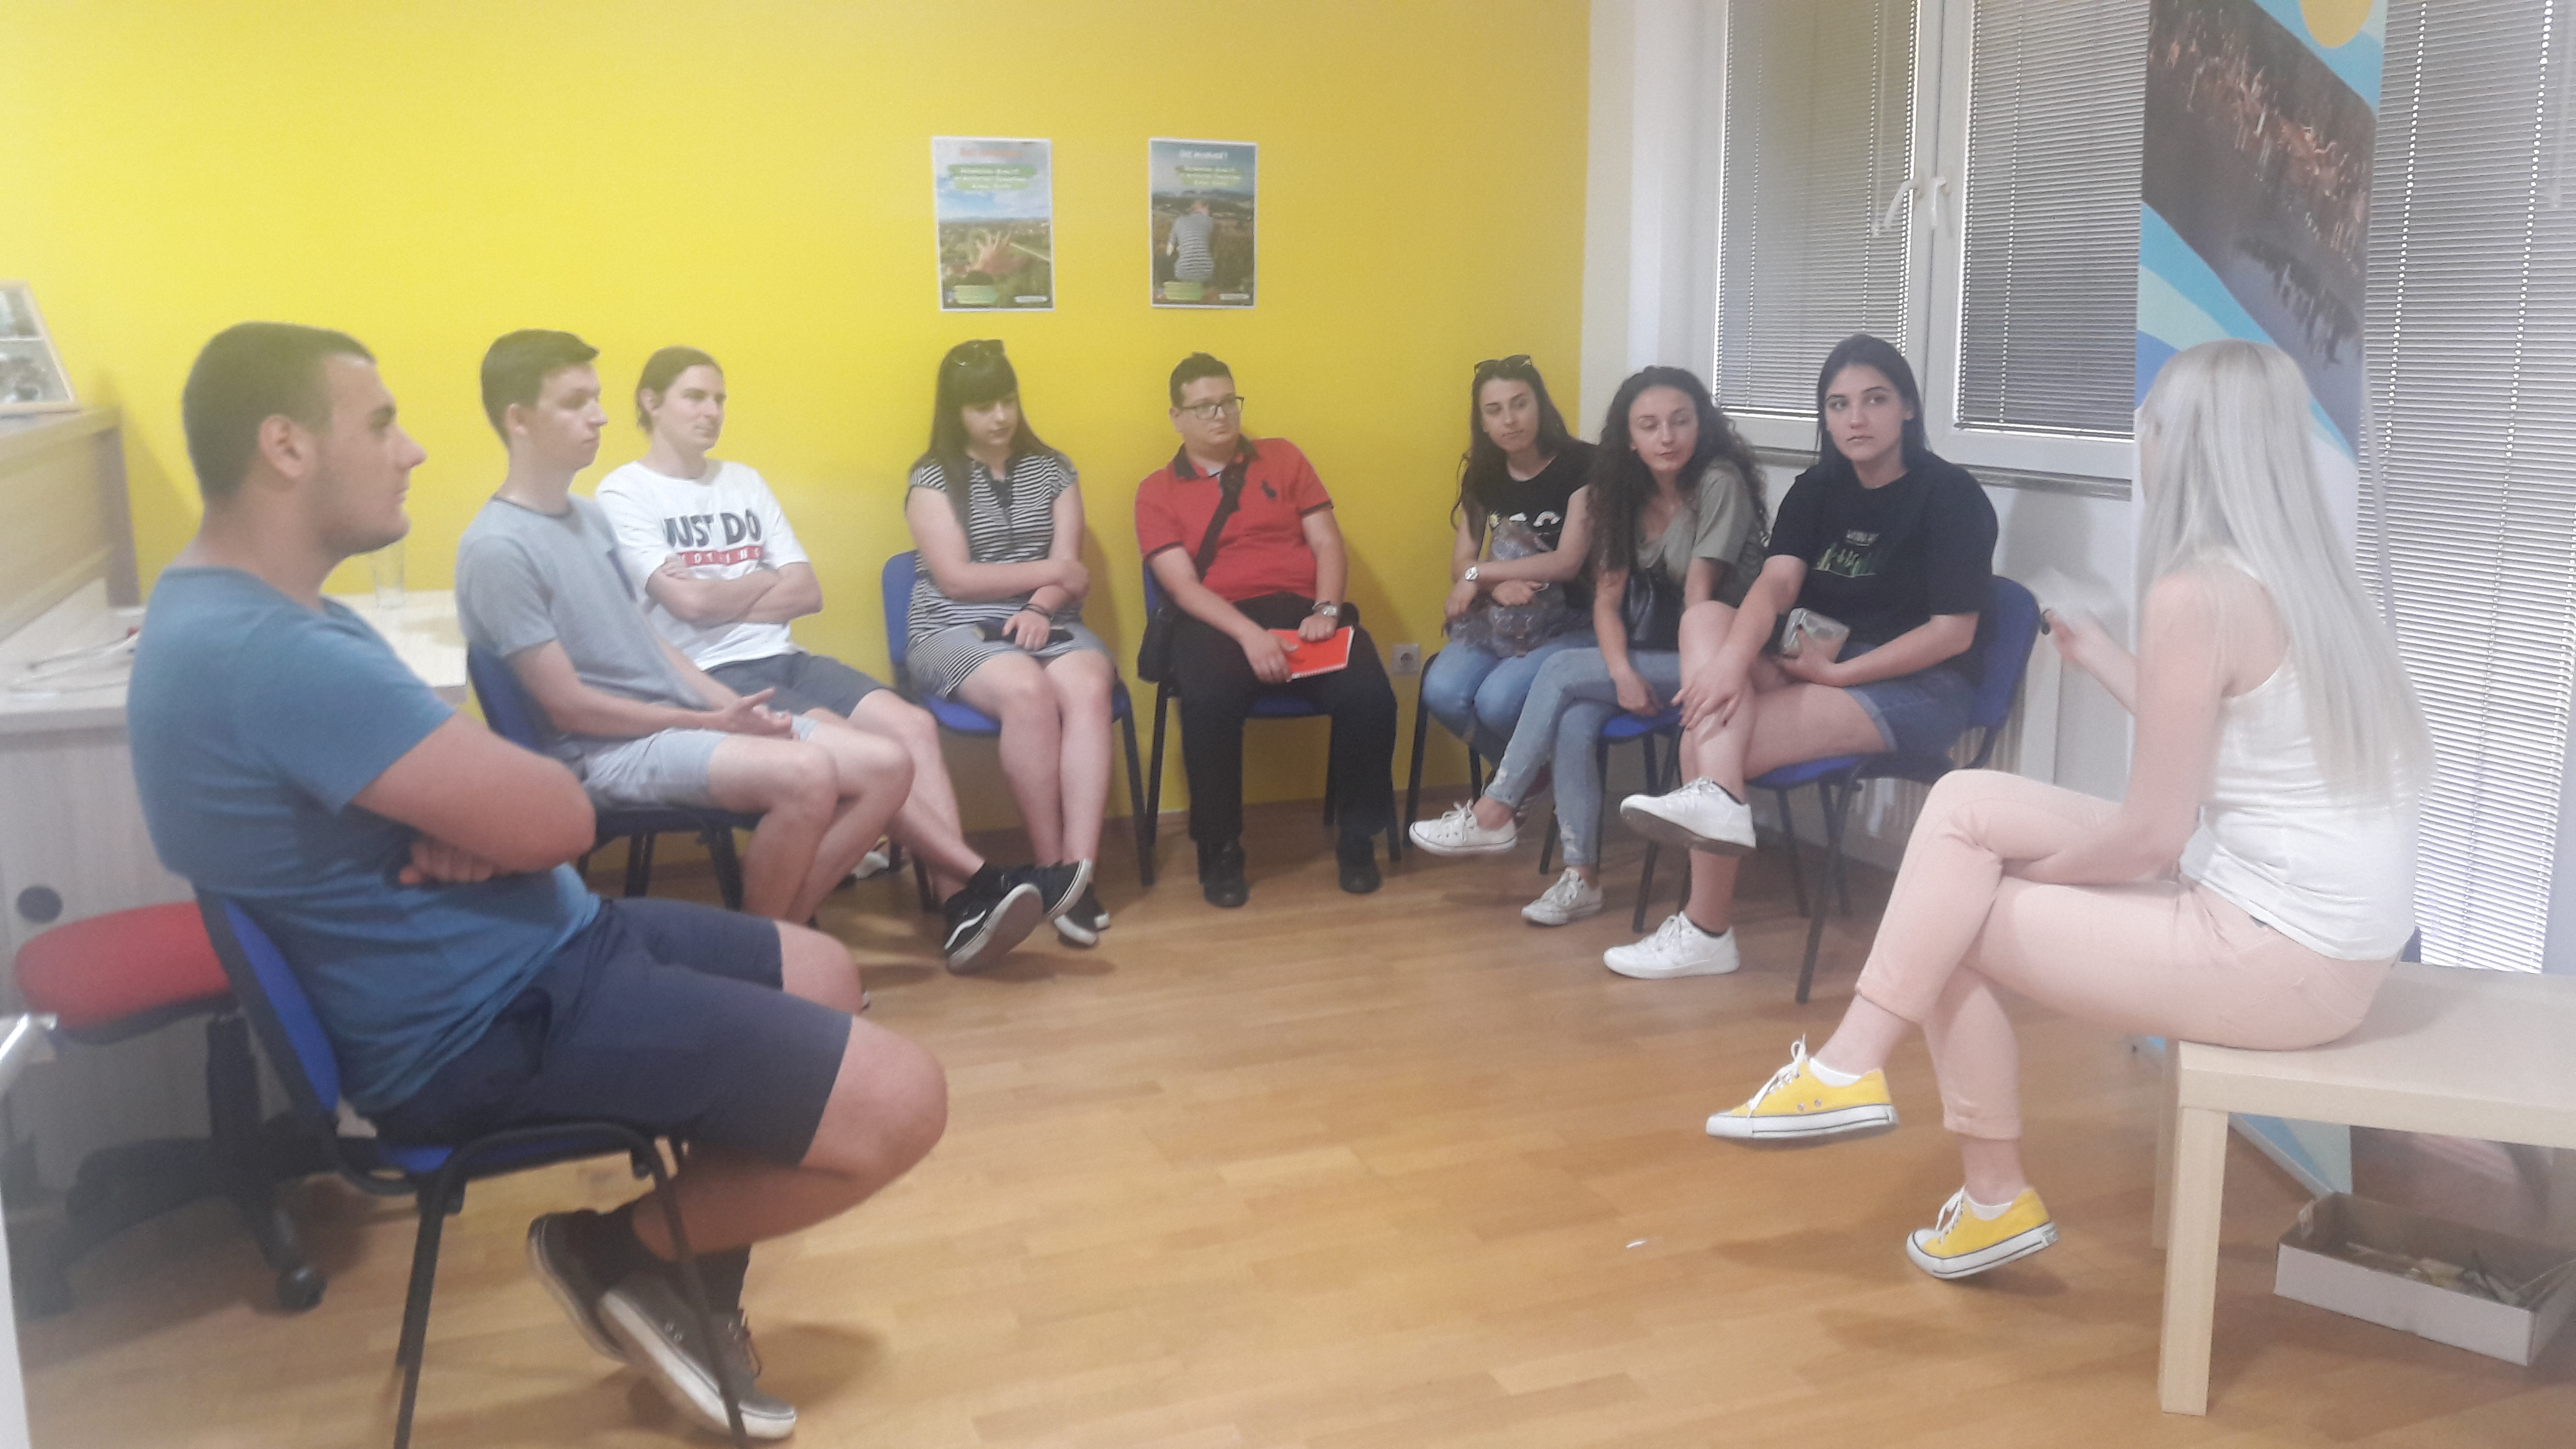 Youth Council Next Generation – Capacity Building Activity 3 – Conflict Resolutions